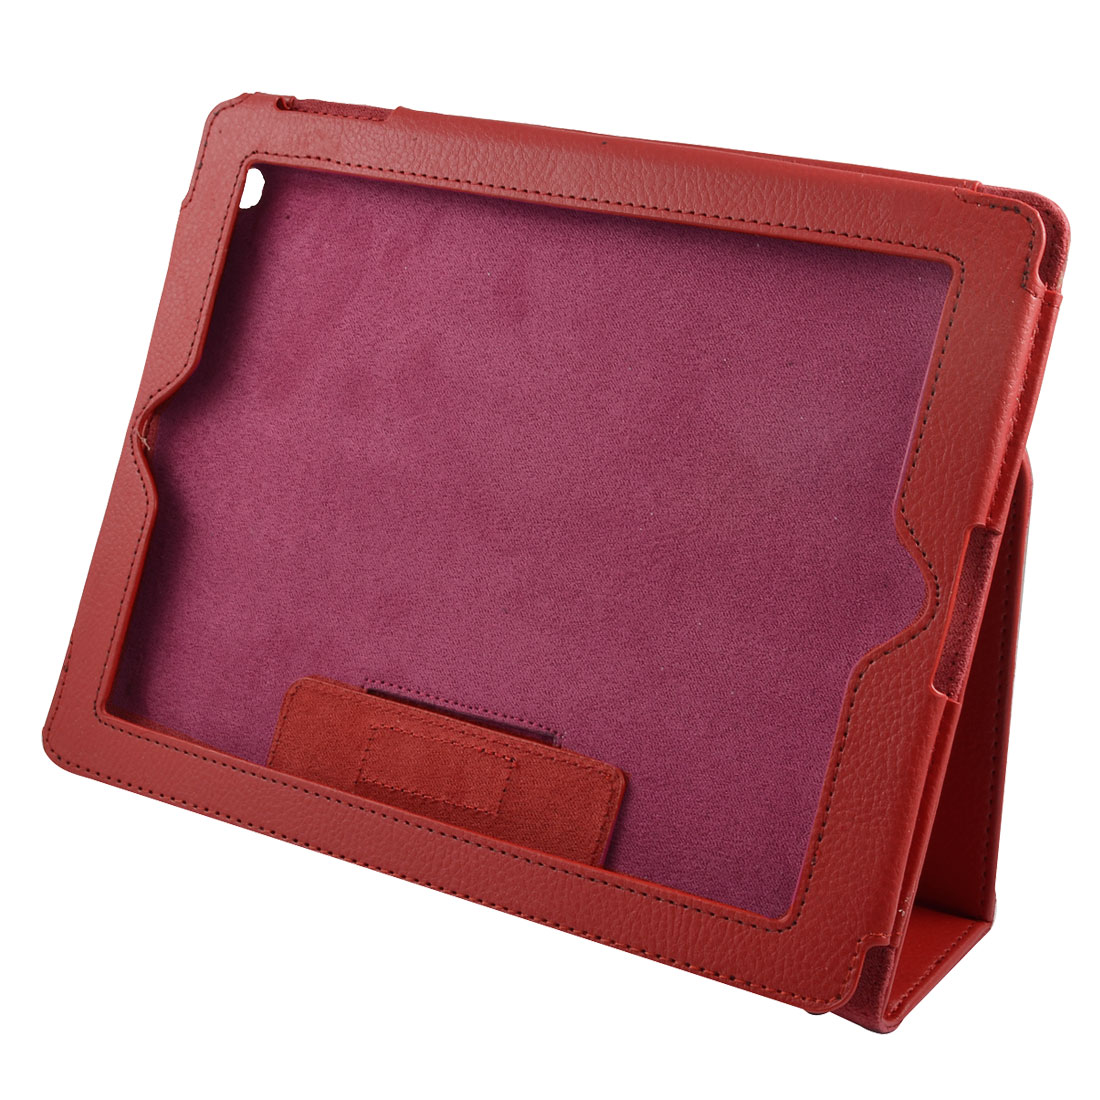 Red Faux Leather Hook Loop Fastener Cover Pouch for iPad 2 iPad 3rd